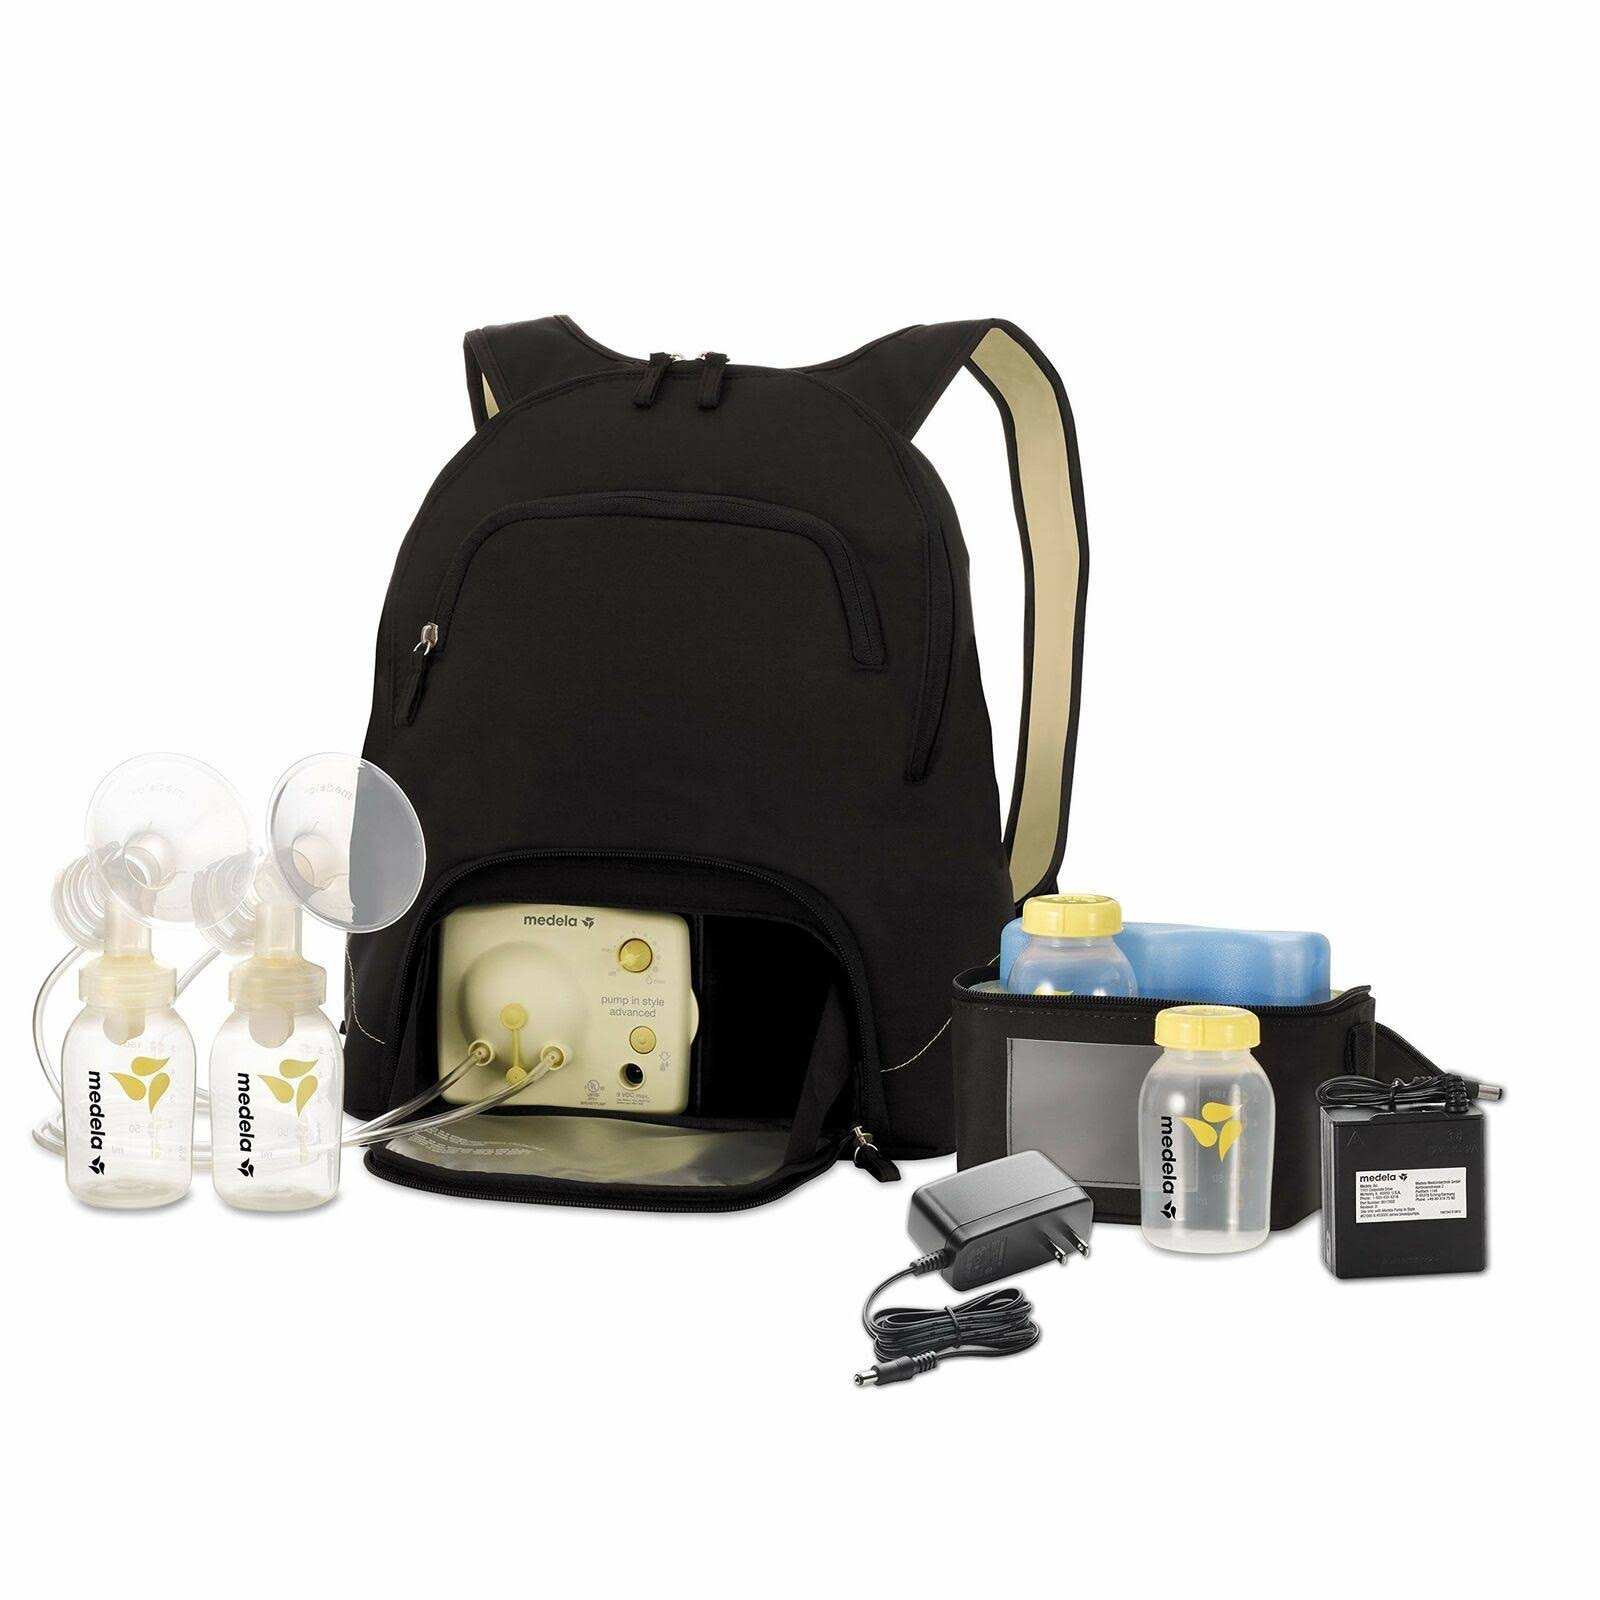 Medela Pump in Style Advanced Breast Pump - with Backpack